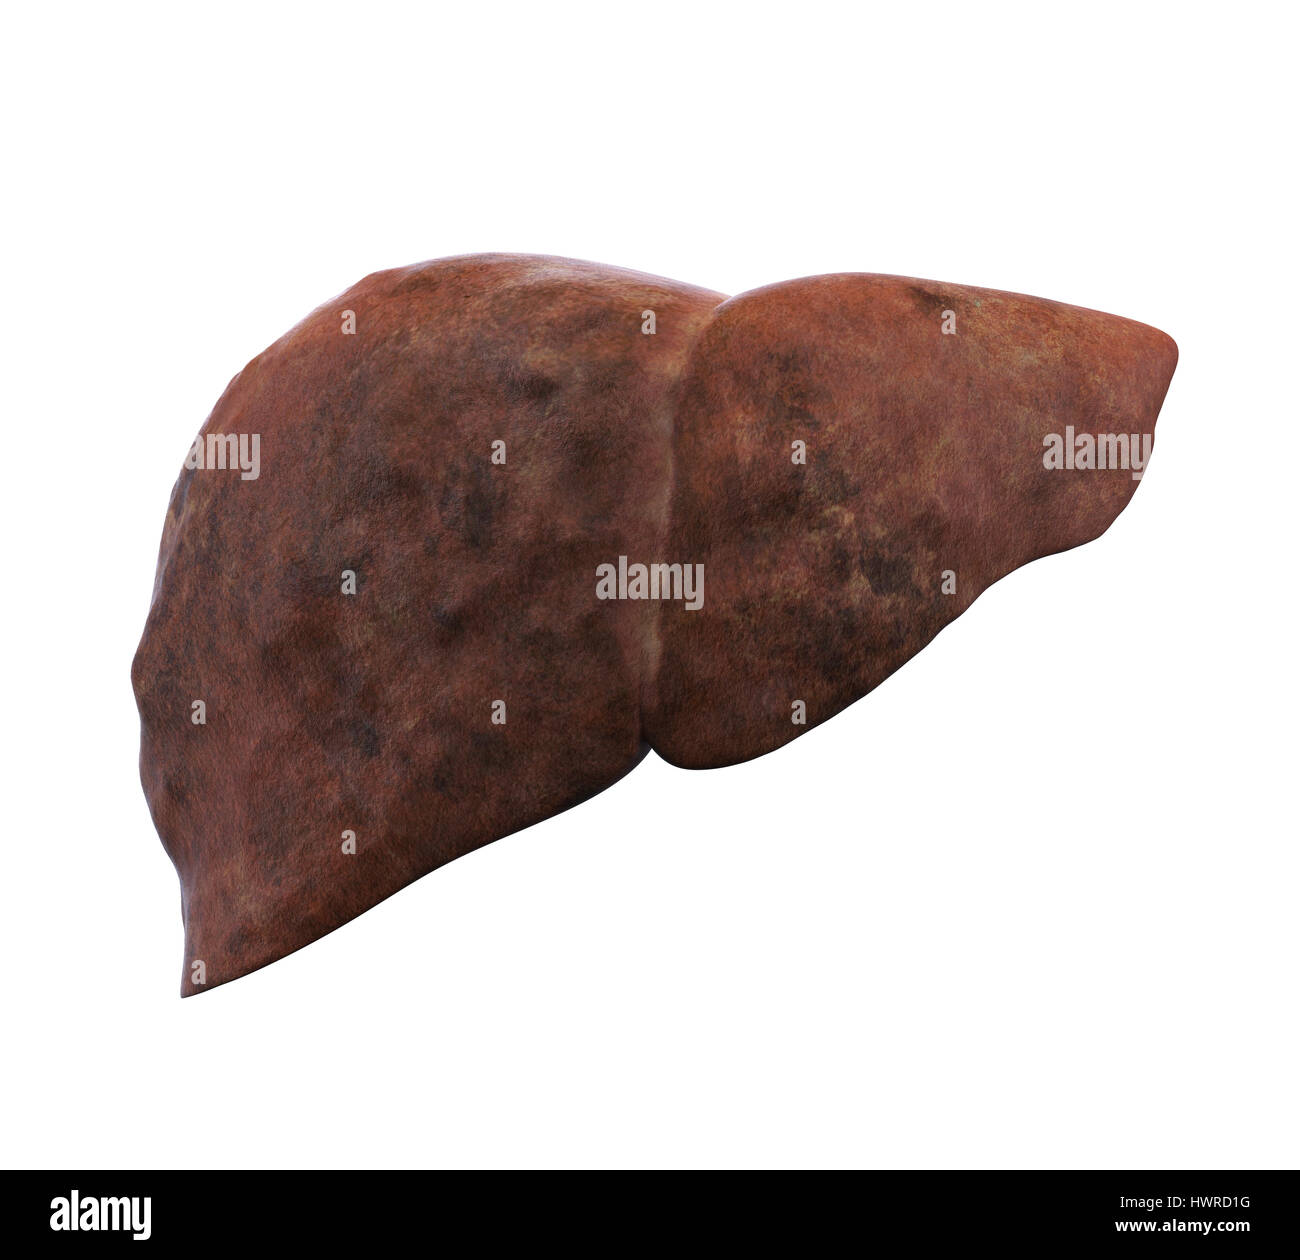 Unhealthy Liver Anatomy Stock Photo, Royalty Free Image ...